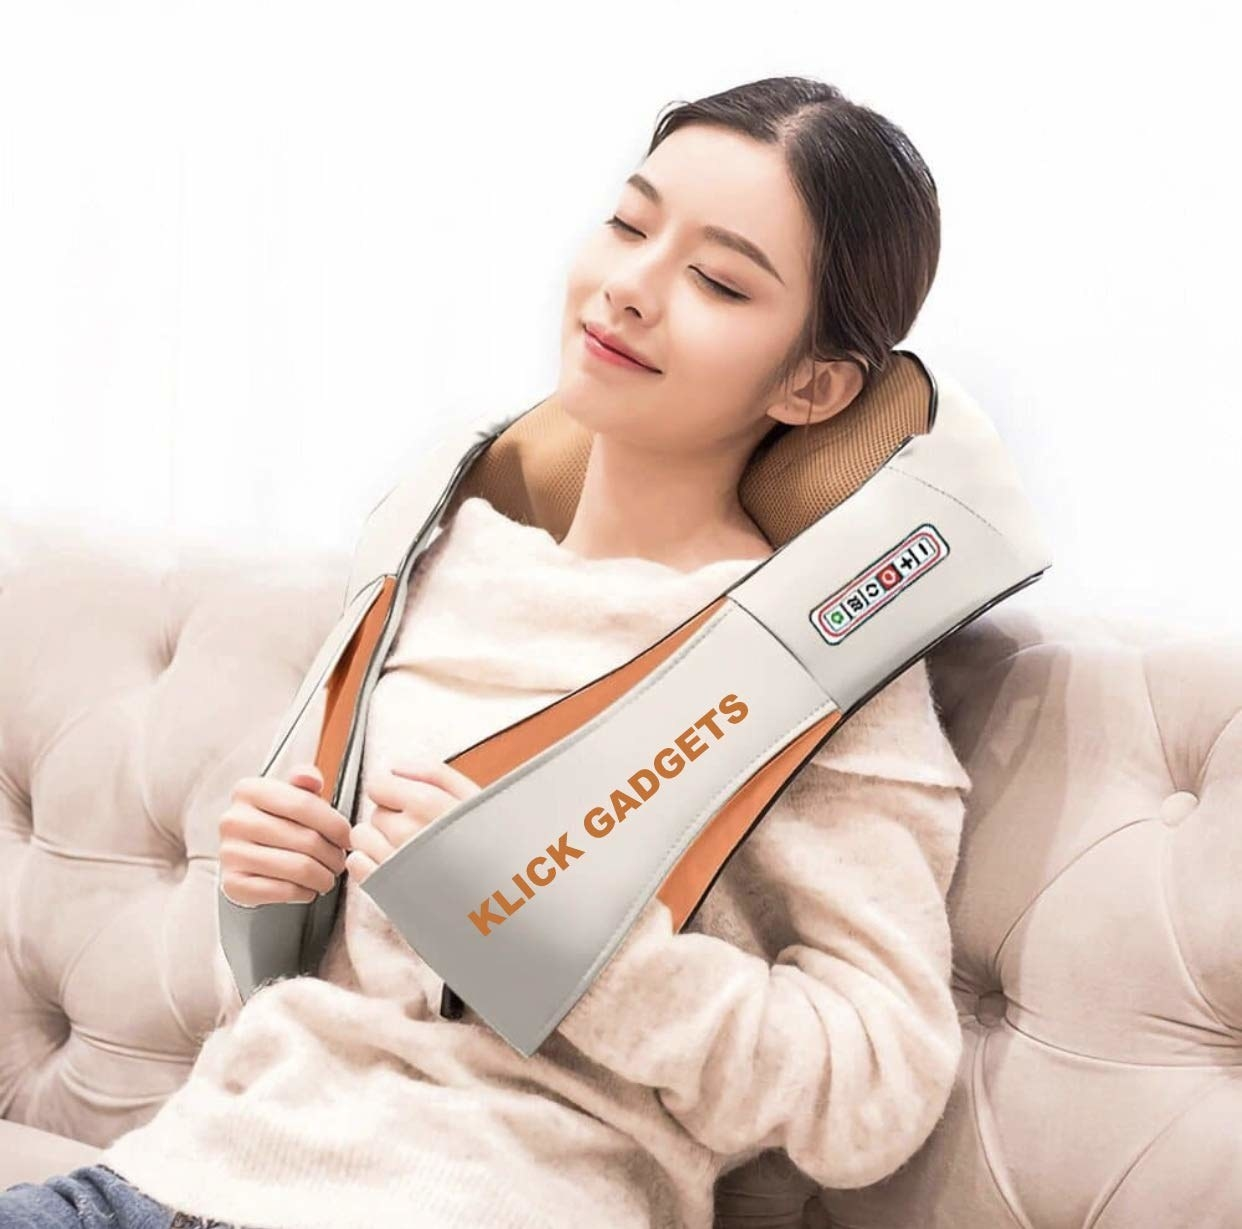 A woman using a neck and shoulder massager on a couch